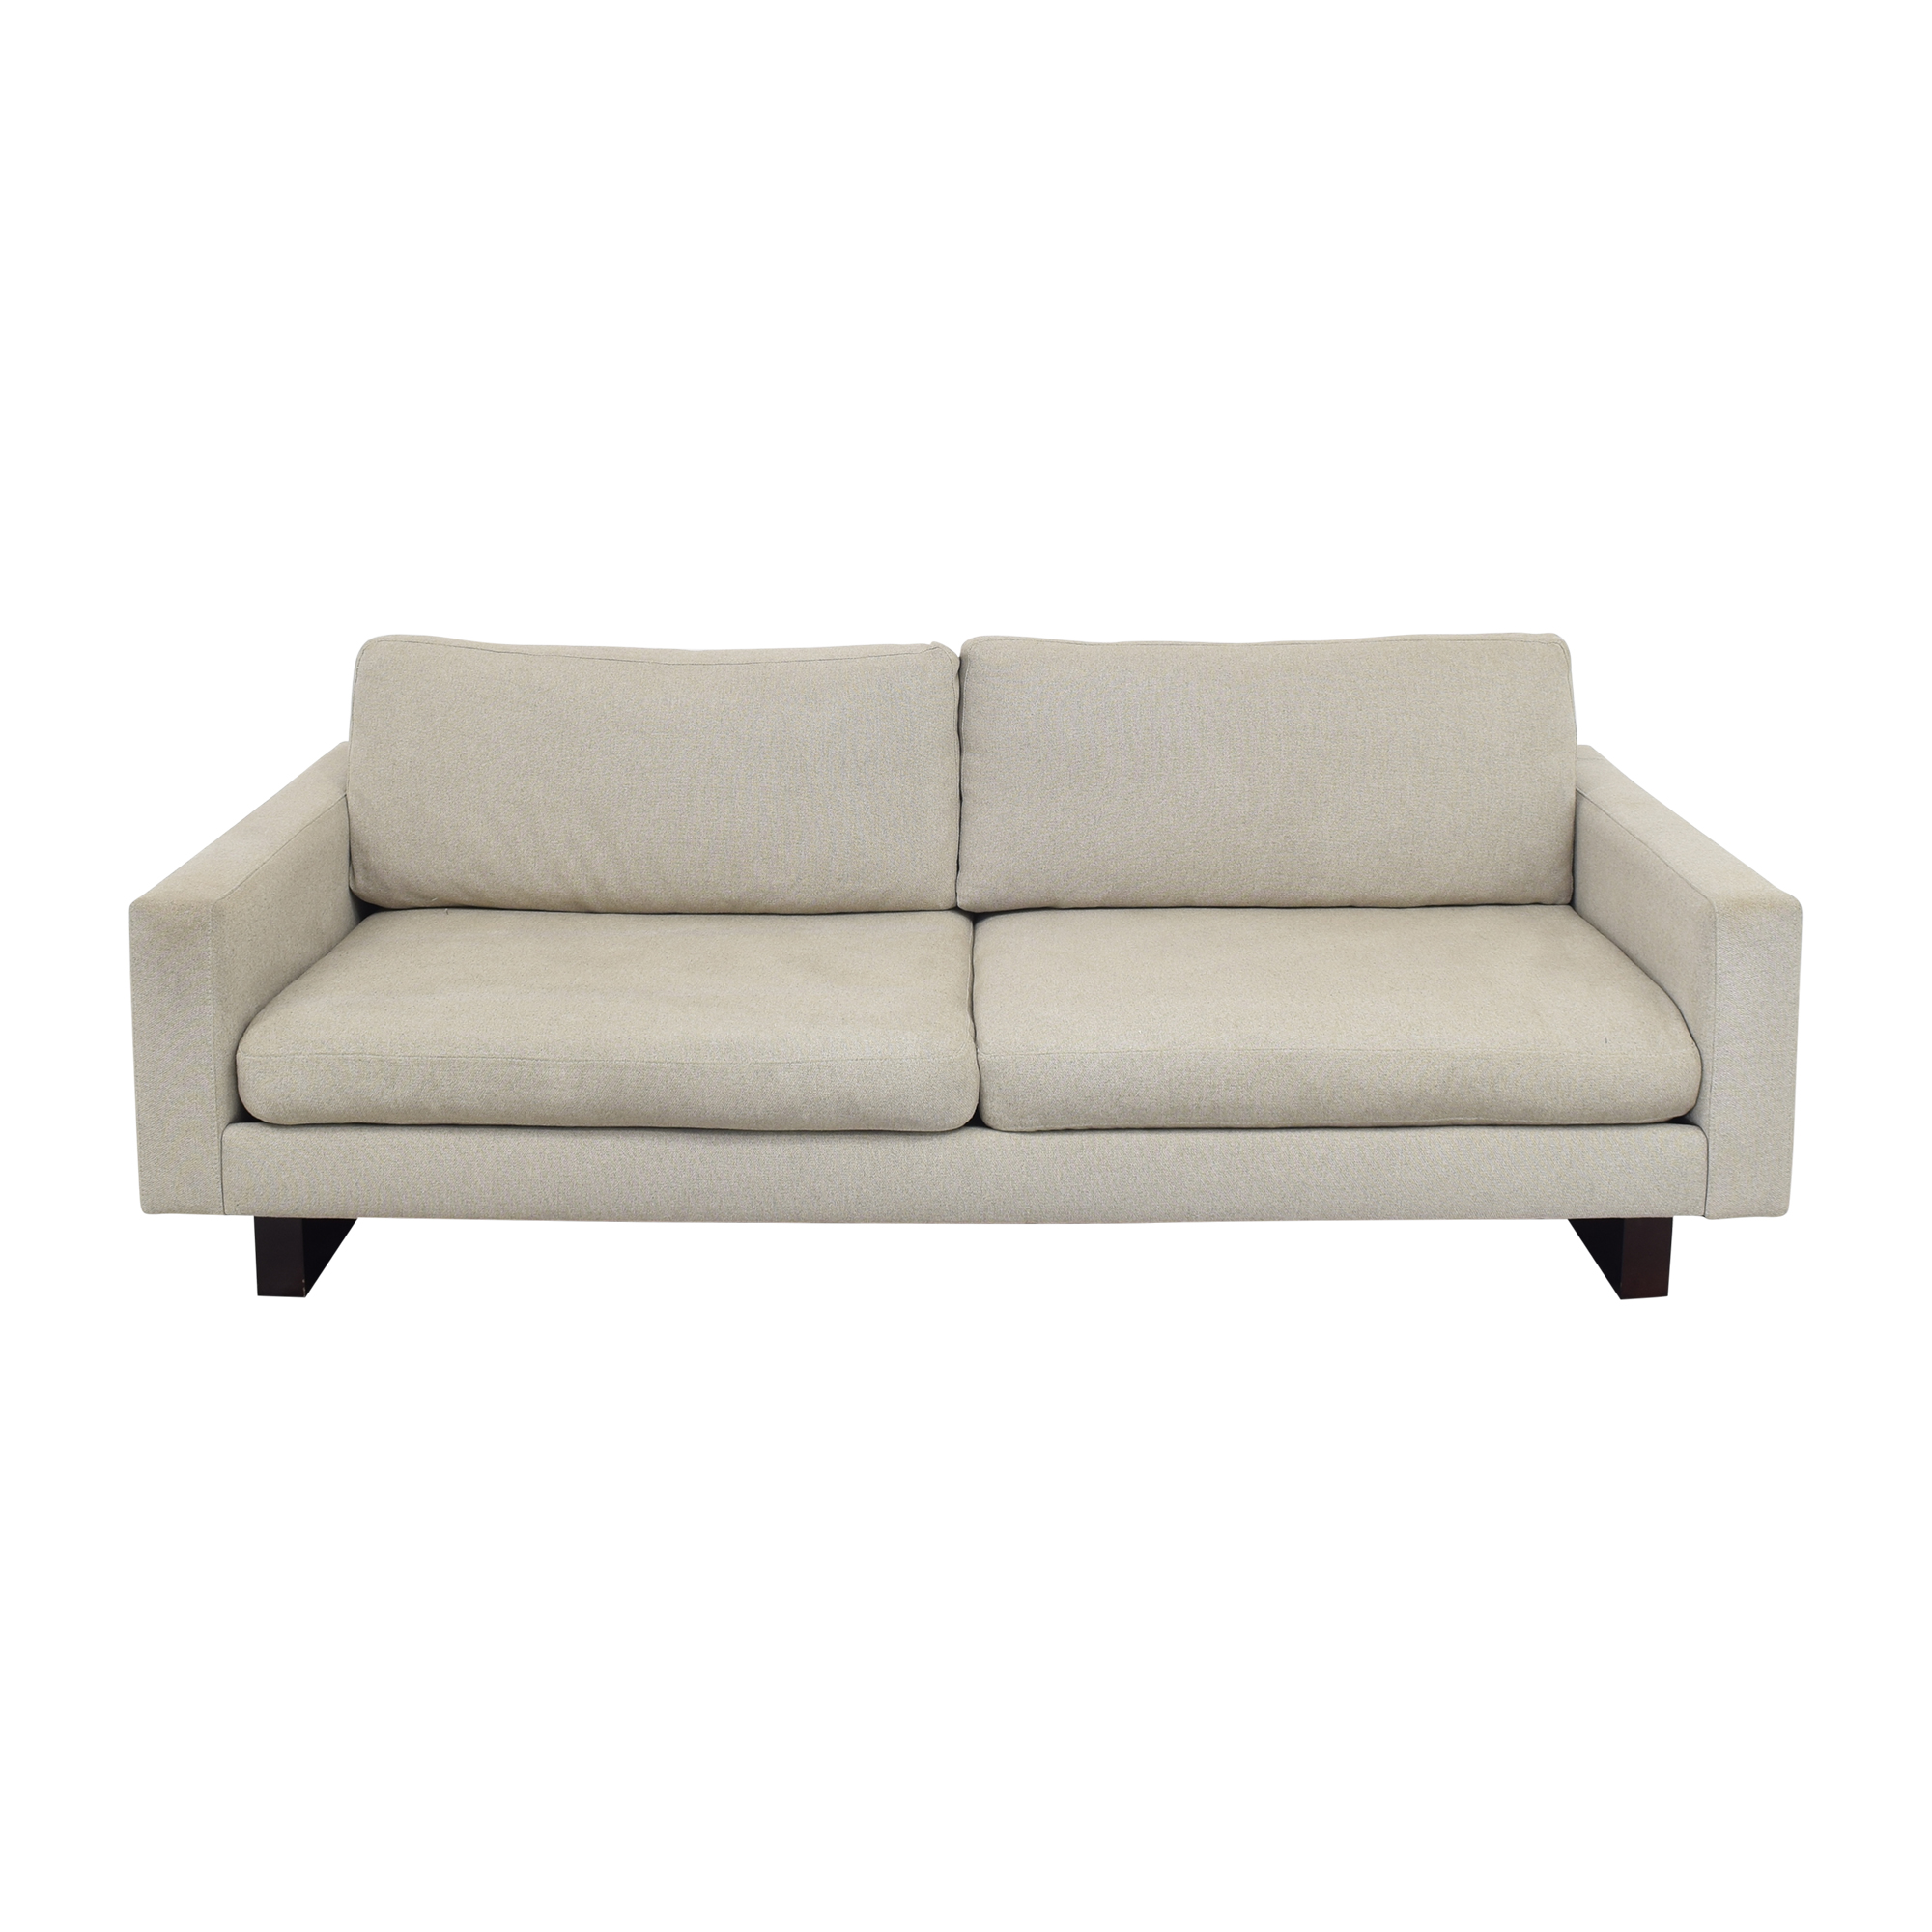 Room & Board Hess Sofa / Sofas